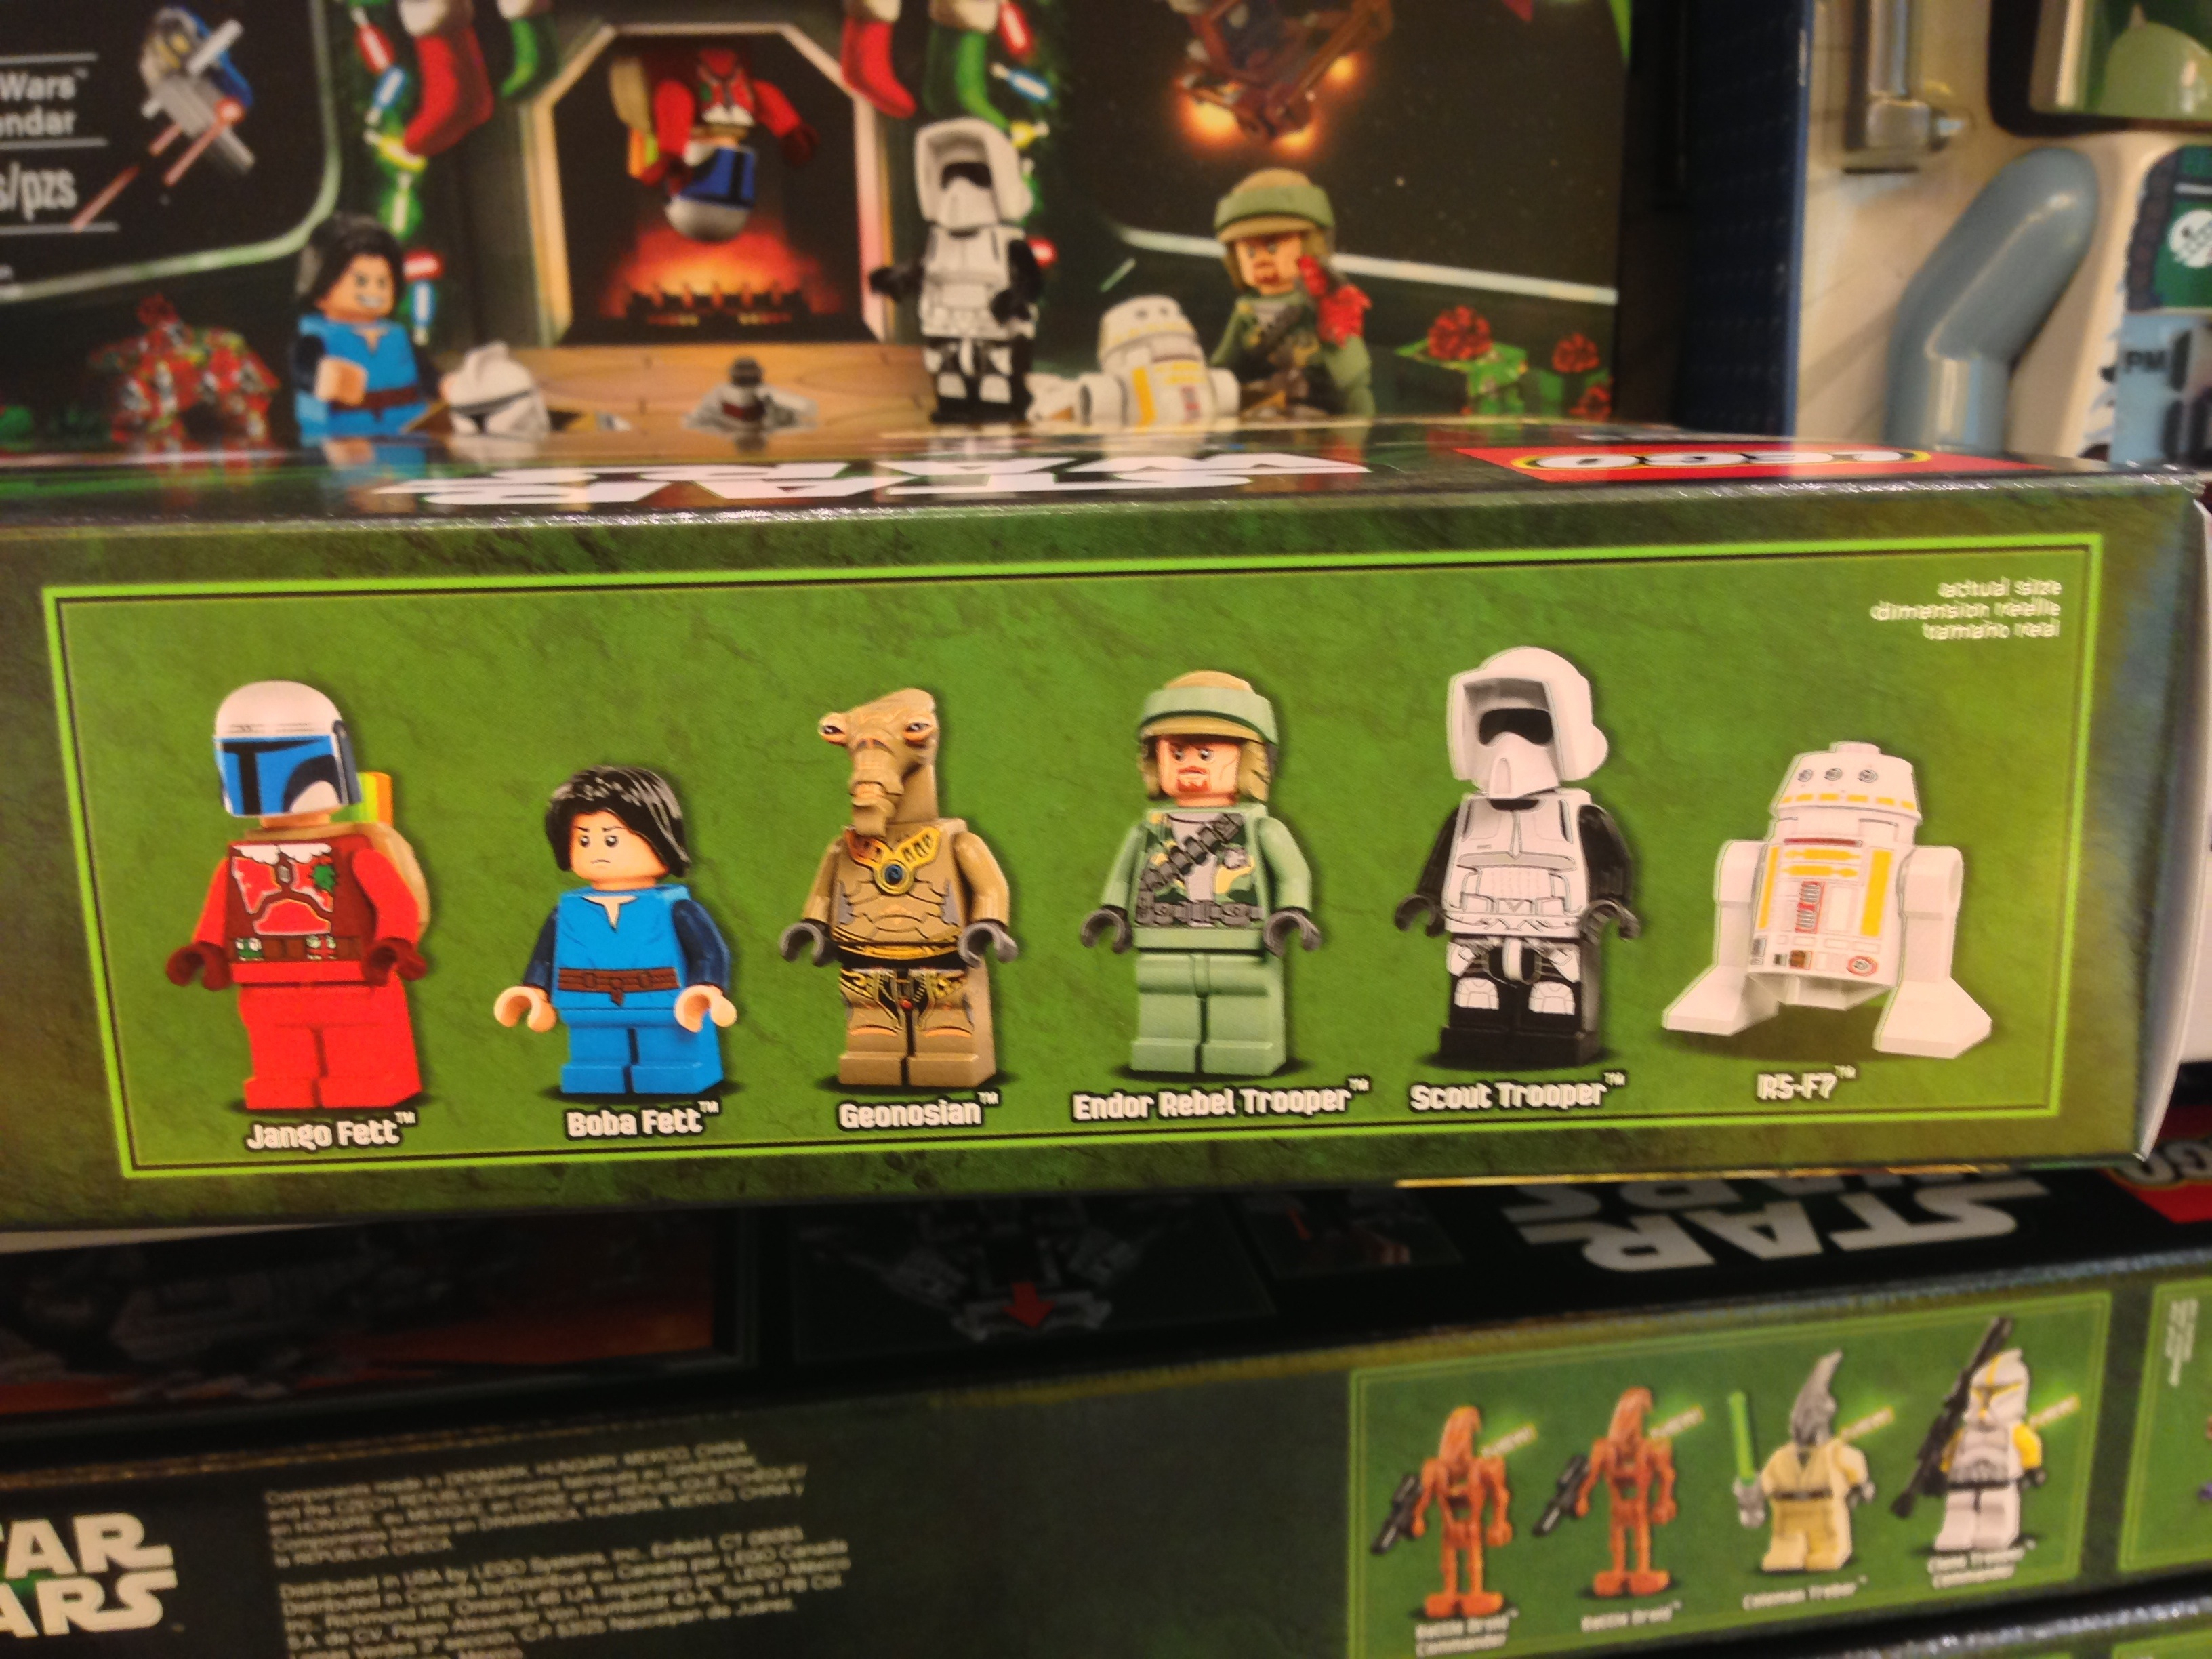 2013 Lego Star Wars Advent Calendar 75023 Released In Stores with regard to Lego Star Wars Calendar 2013